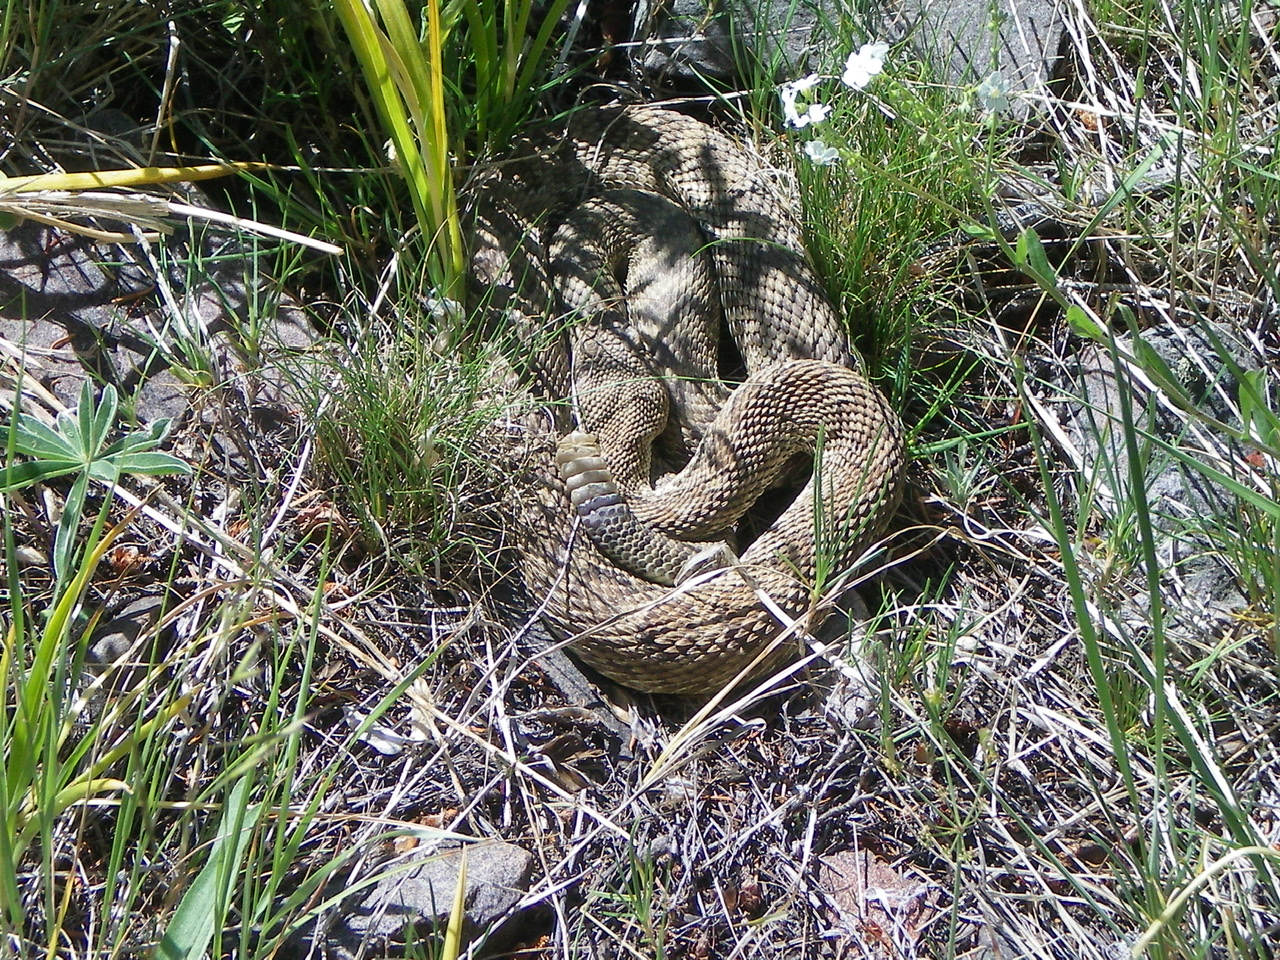 A timber rattler sunning itself in the pine forest of the South Ridge of Peak 9366. Another one was 2 feet away. Livingston Douglas Photo